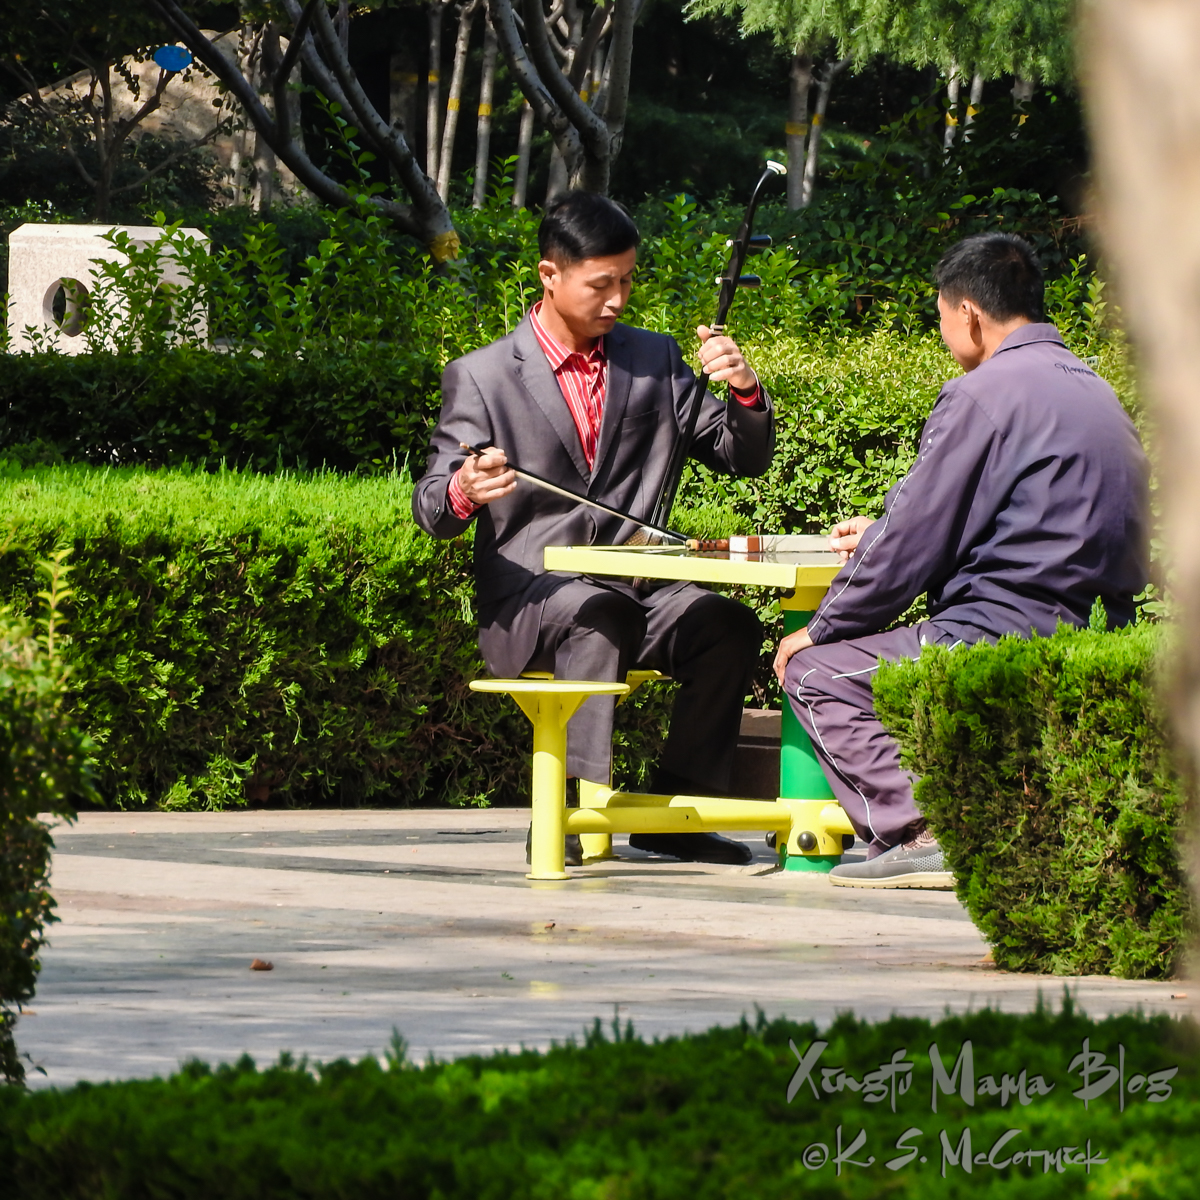 Man playing an erhu sitting at a table in a park.